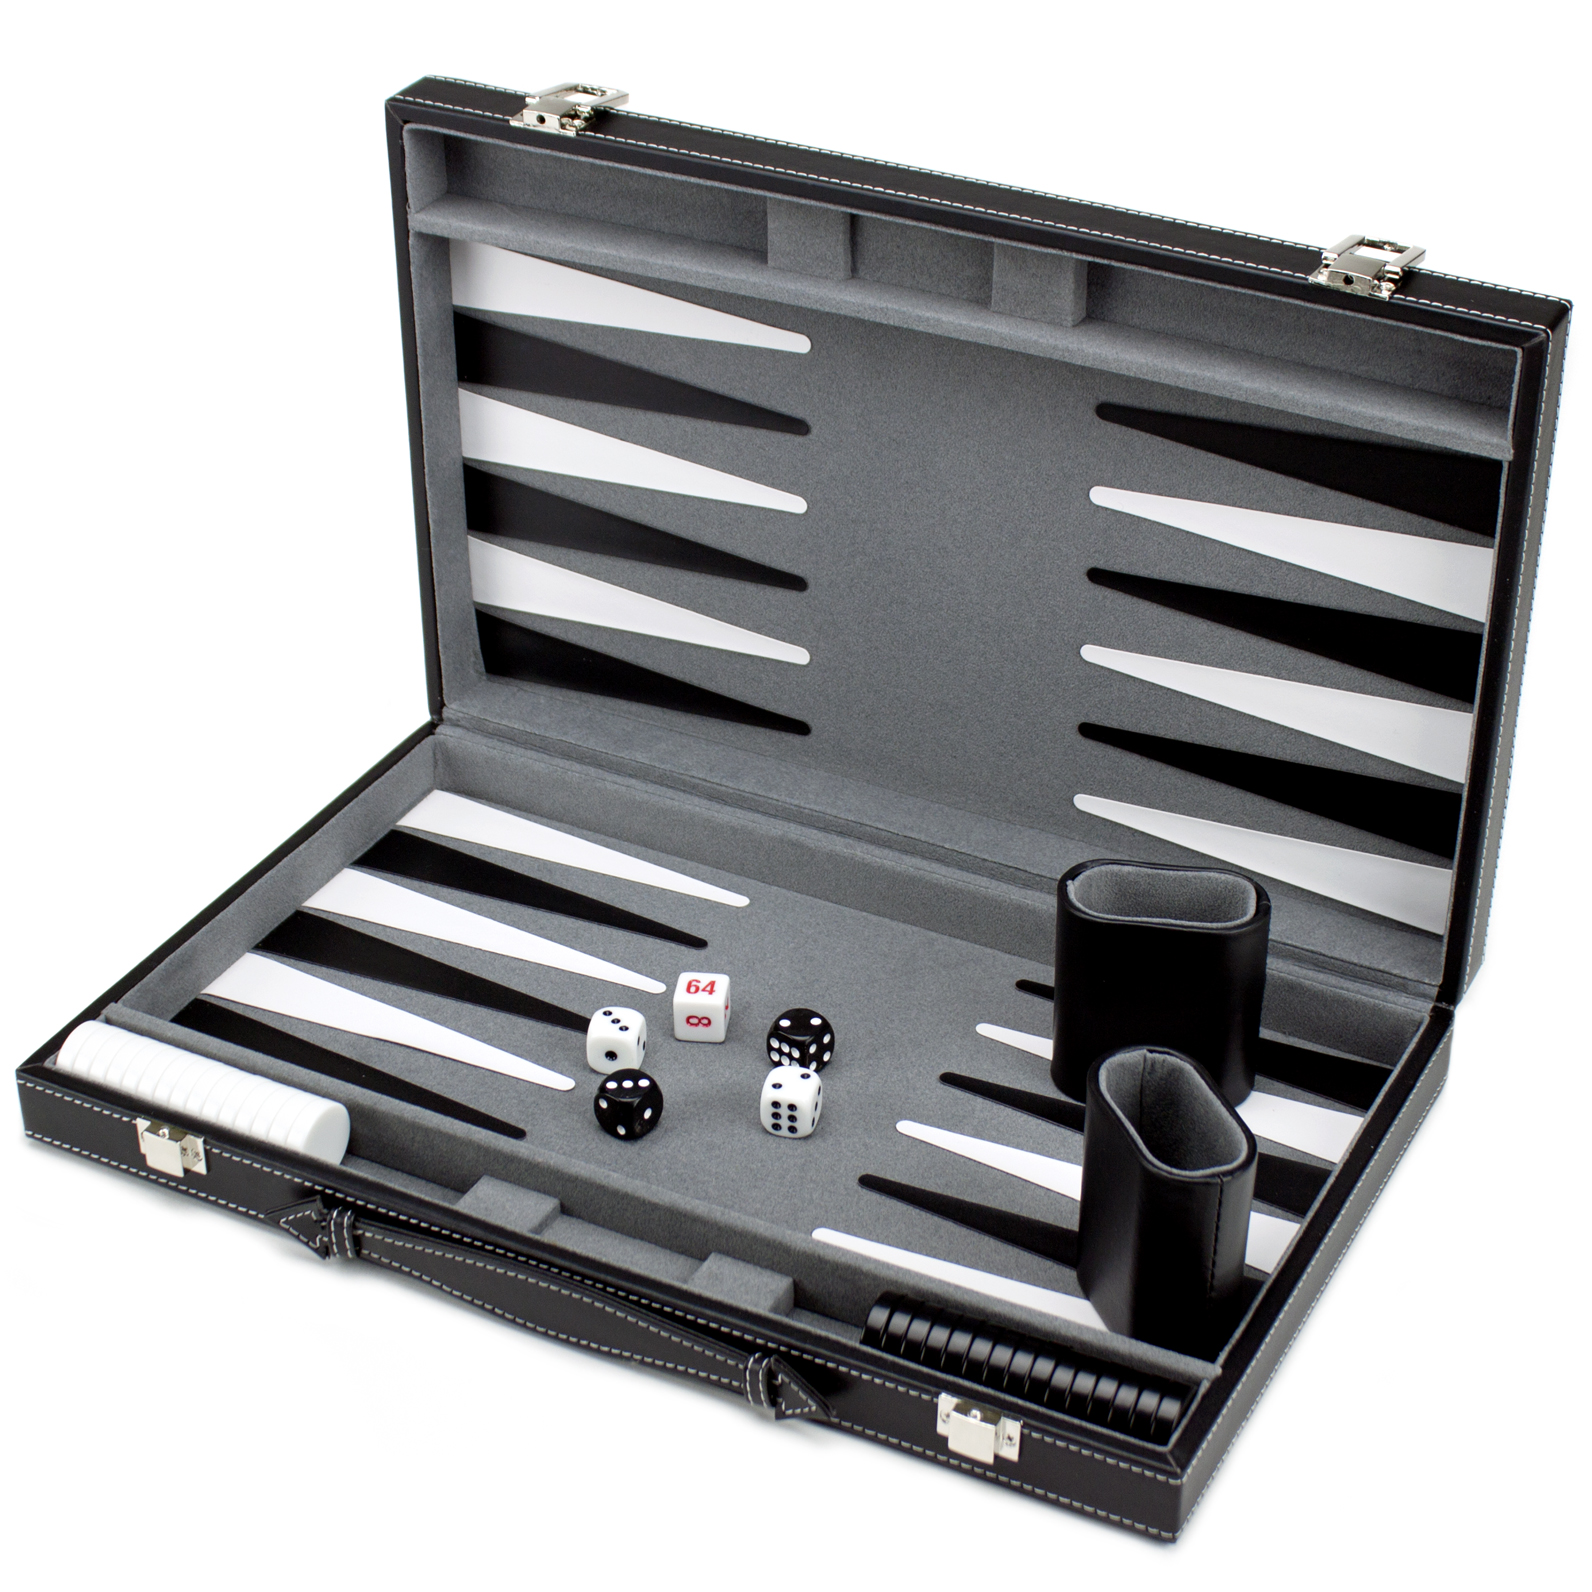 (Open Box) 15in Backgammon Set with Stitched Black Leatherette Case